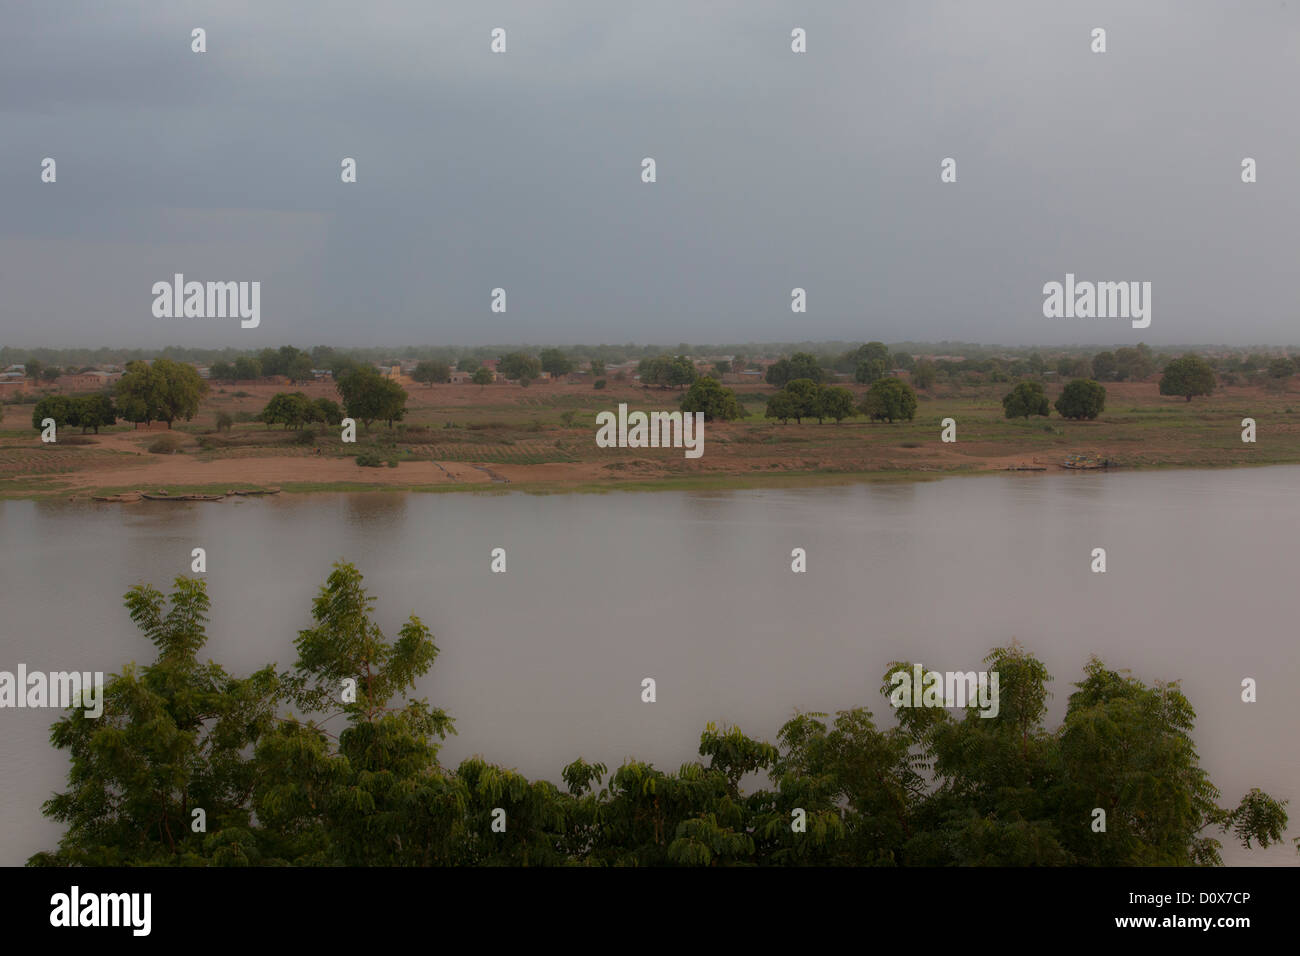 The Chari River near N'djamena, Chad, Africa. - Stock Image